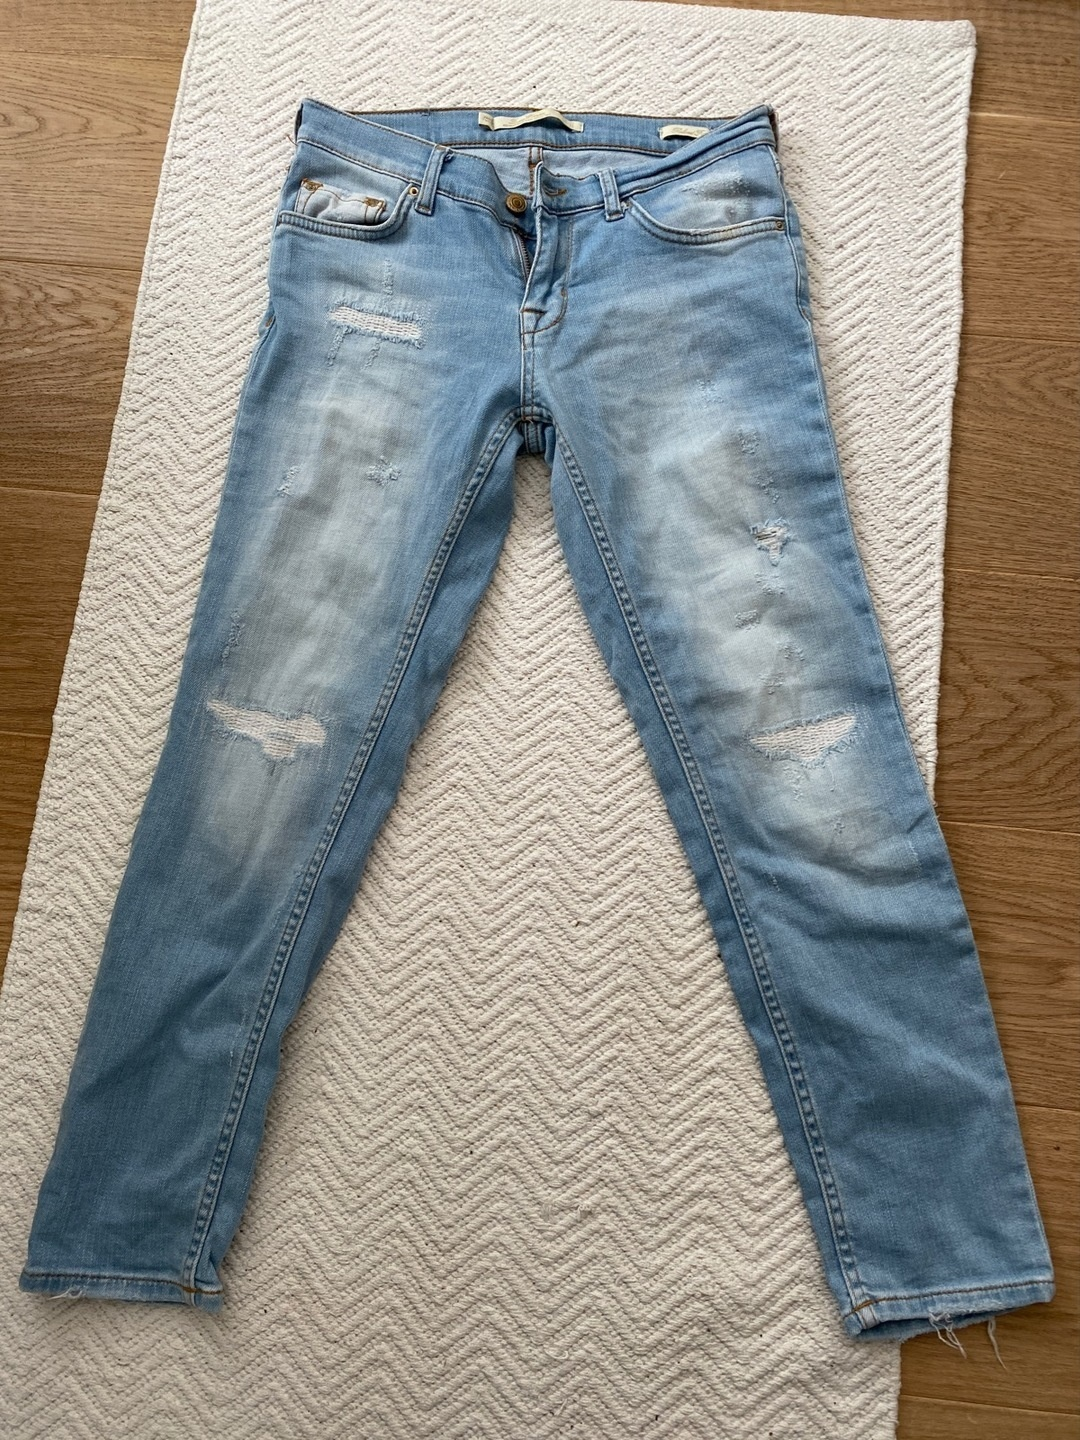 Damen hosen & jeans - ZARA photo 2